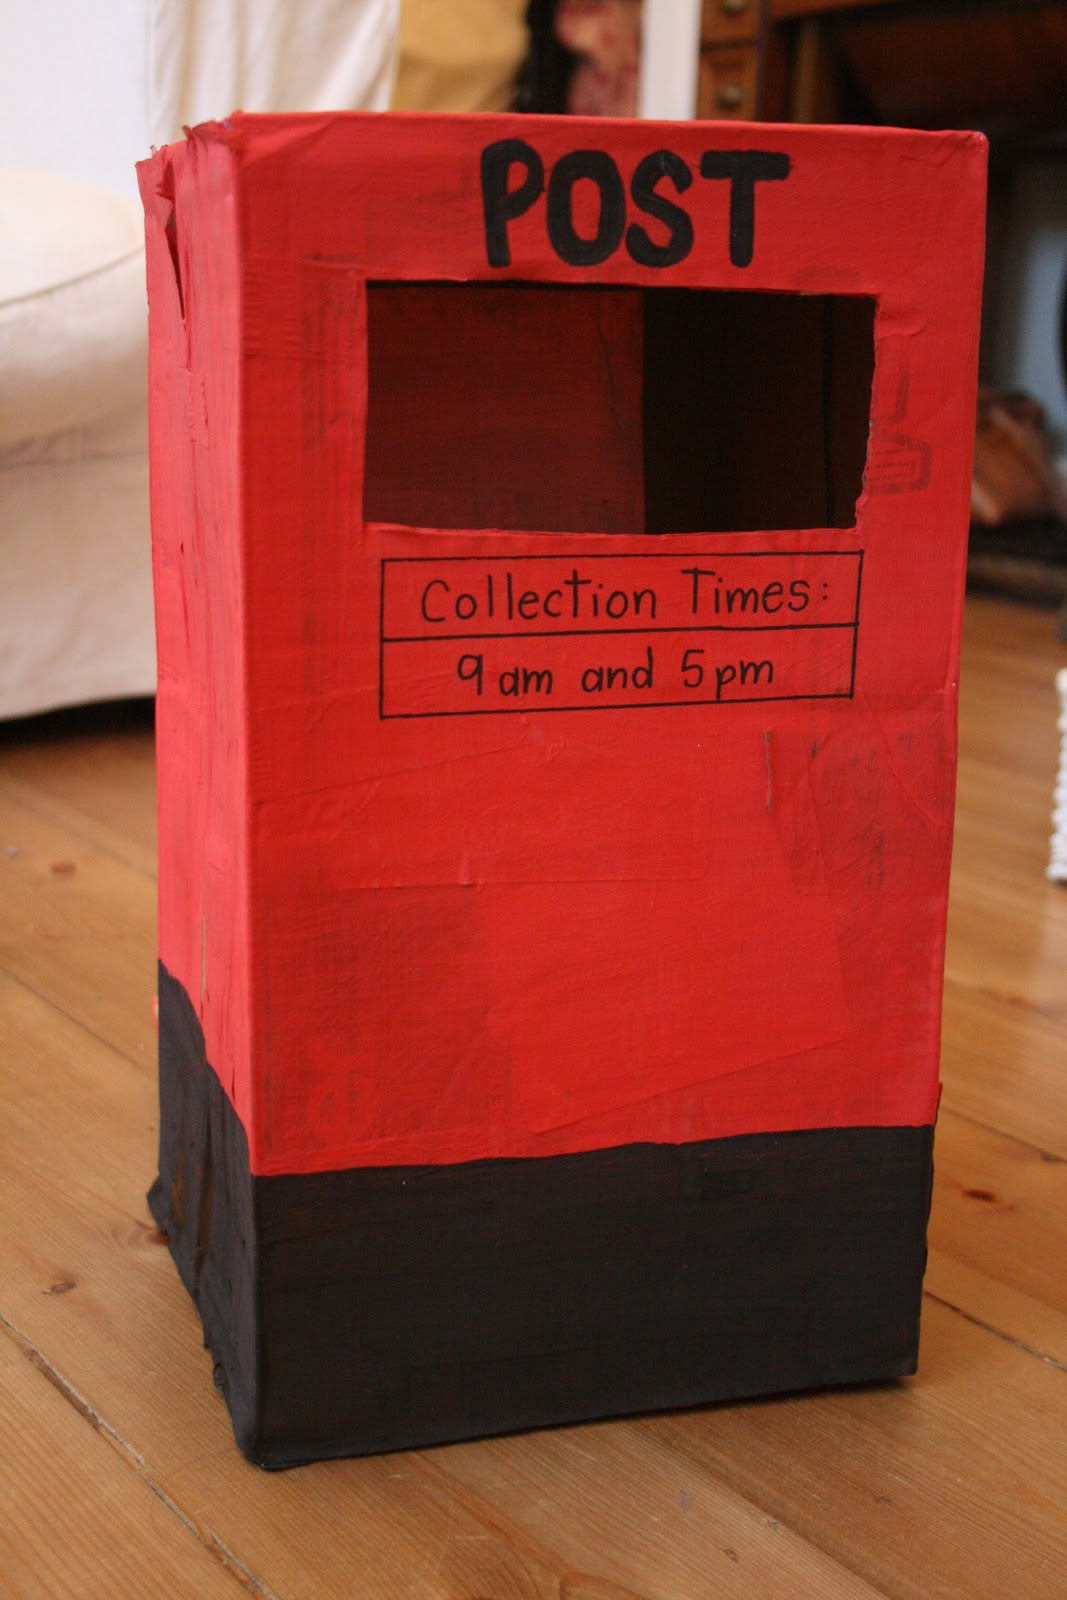 Post Box Pretend Play The Imagination Tree